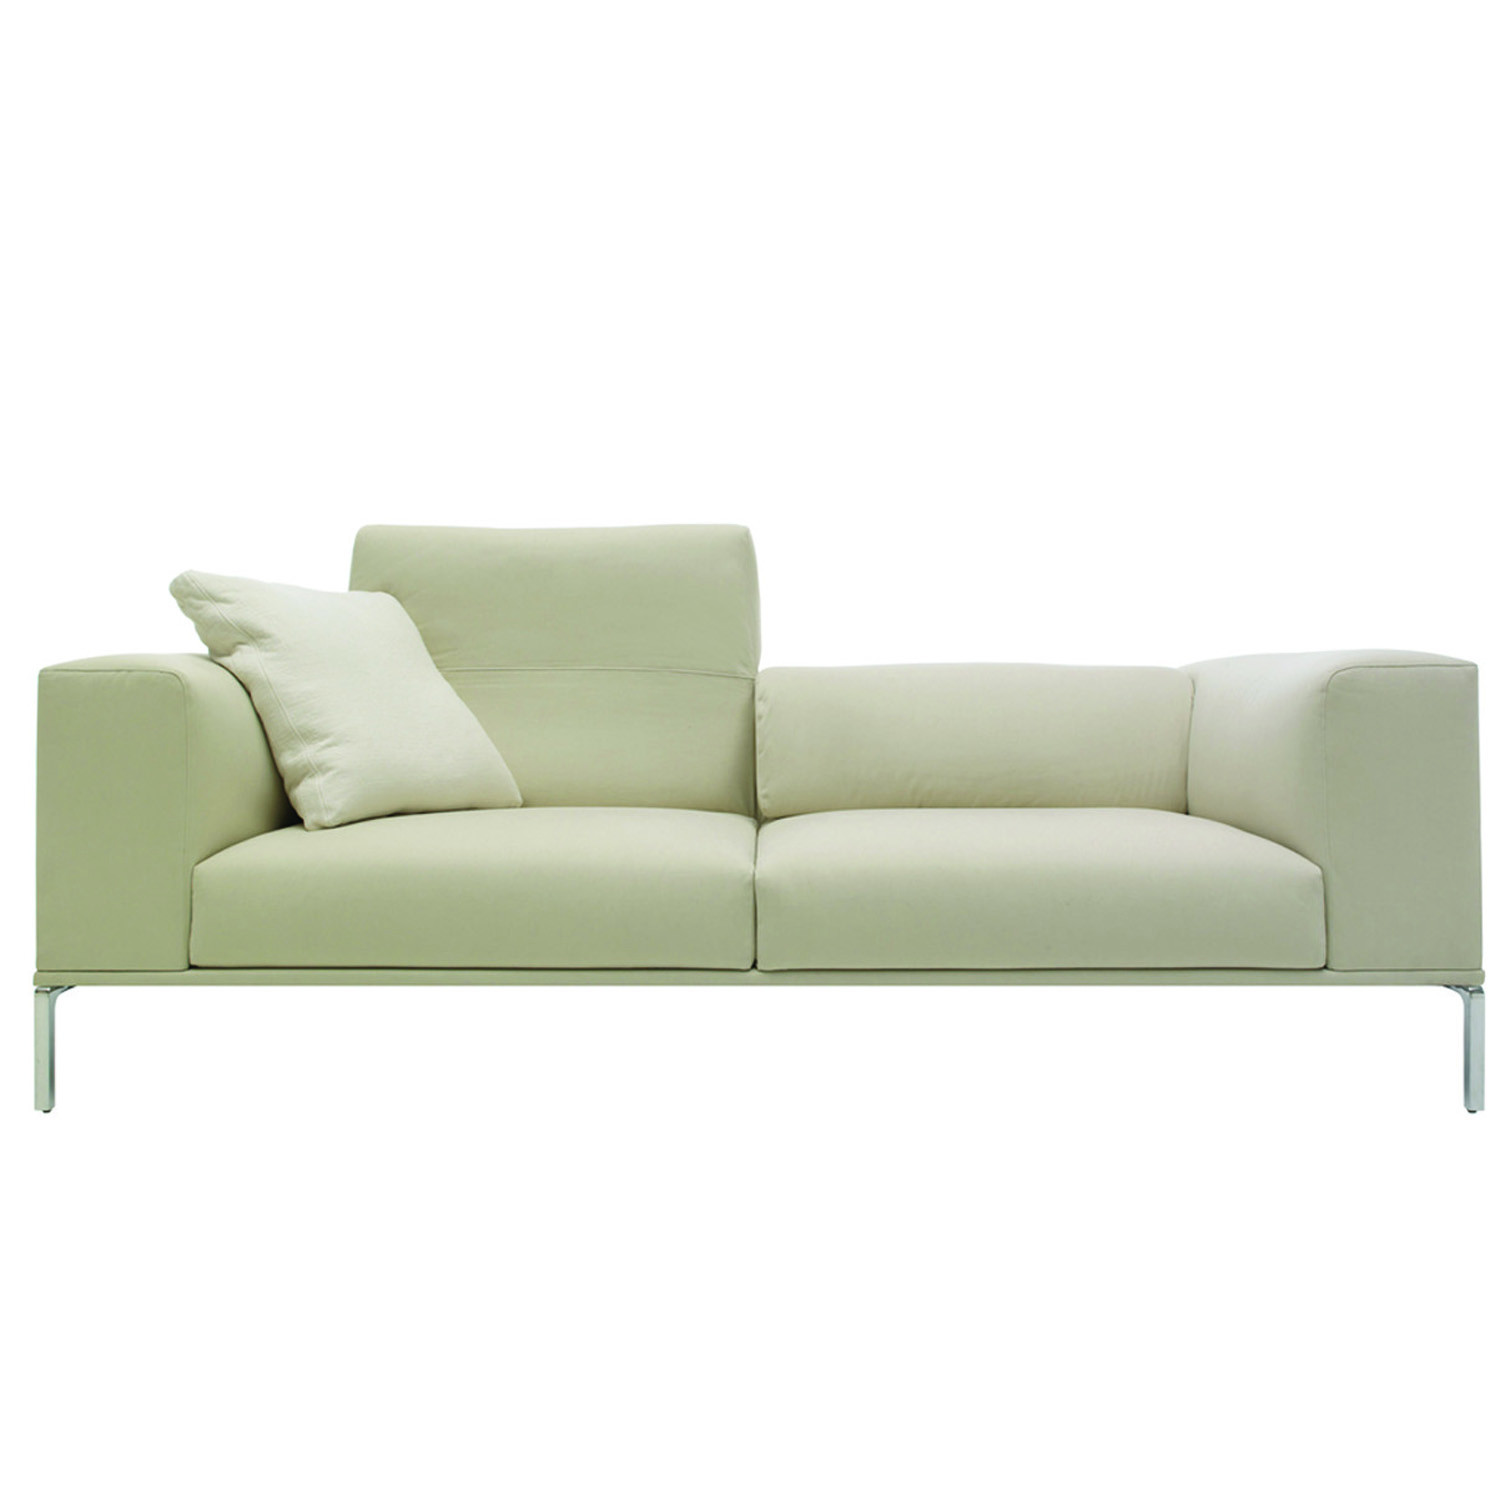 191 Moov Sofa White One High Back Cushion